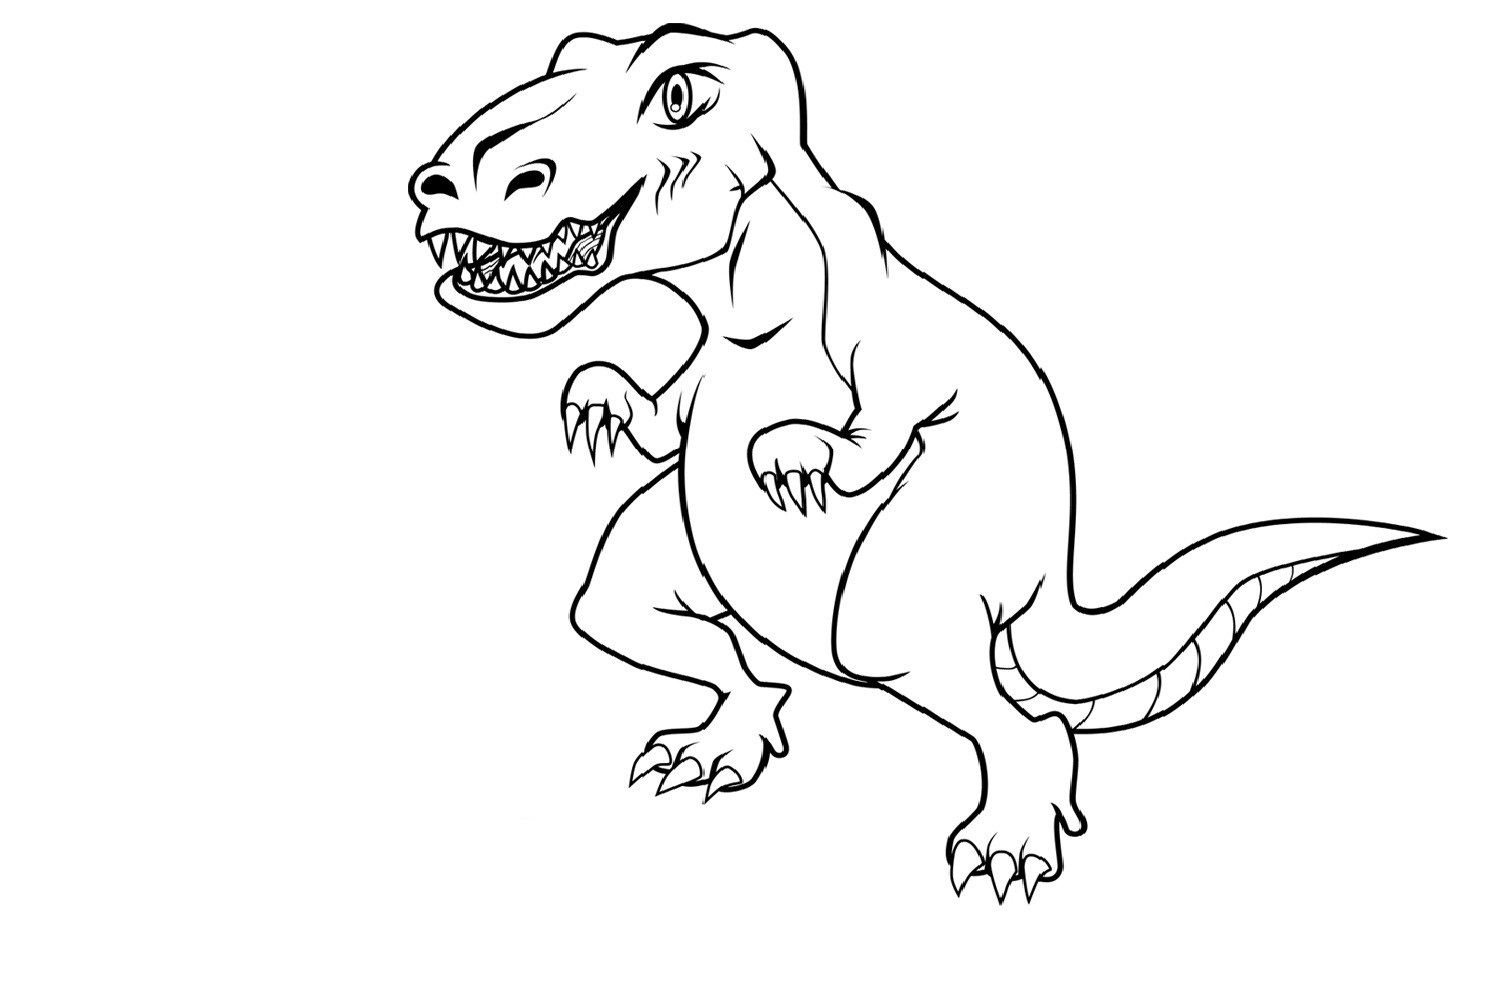 dinossaur coloring pages - photo#31